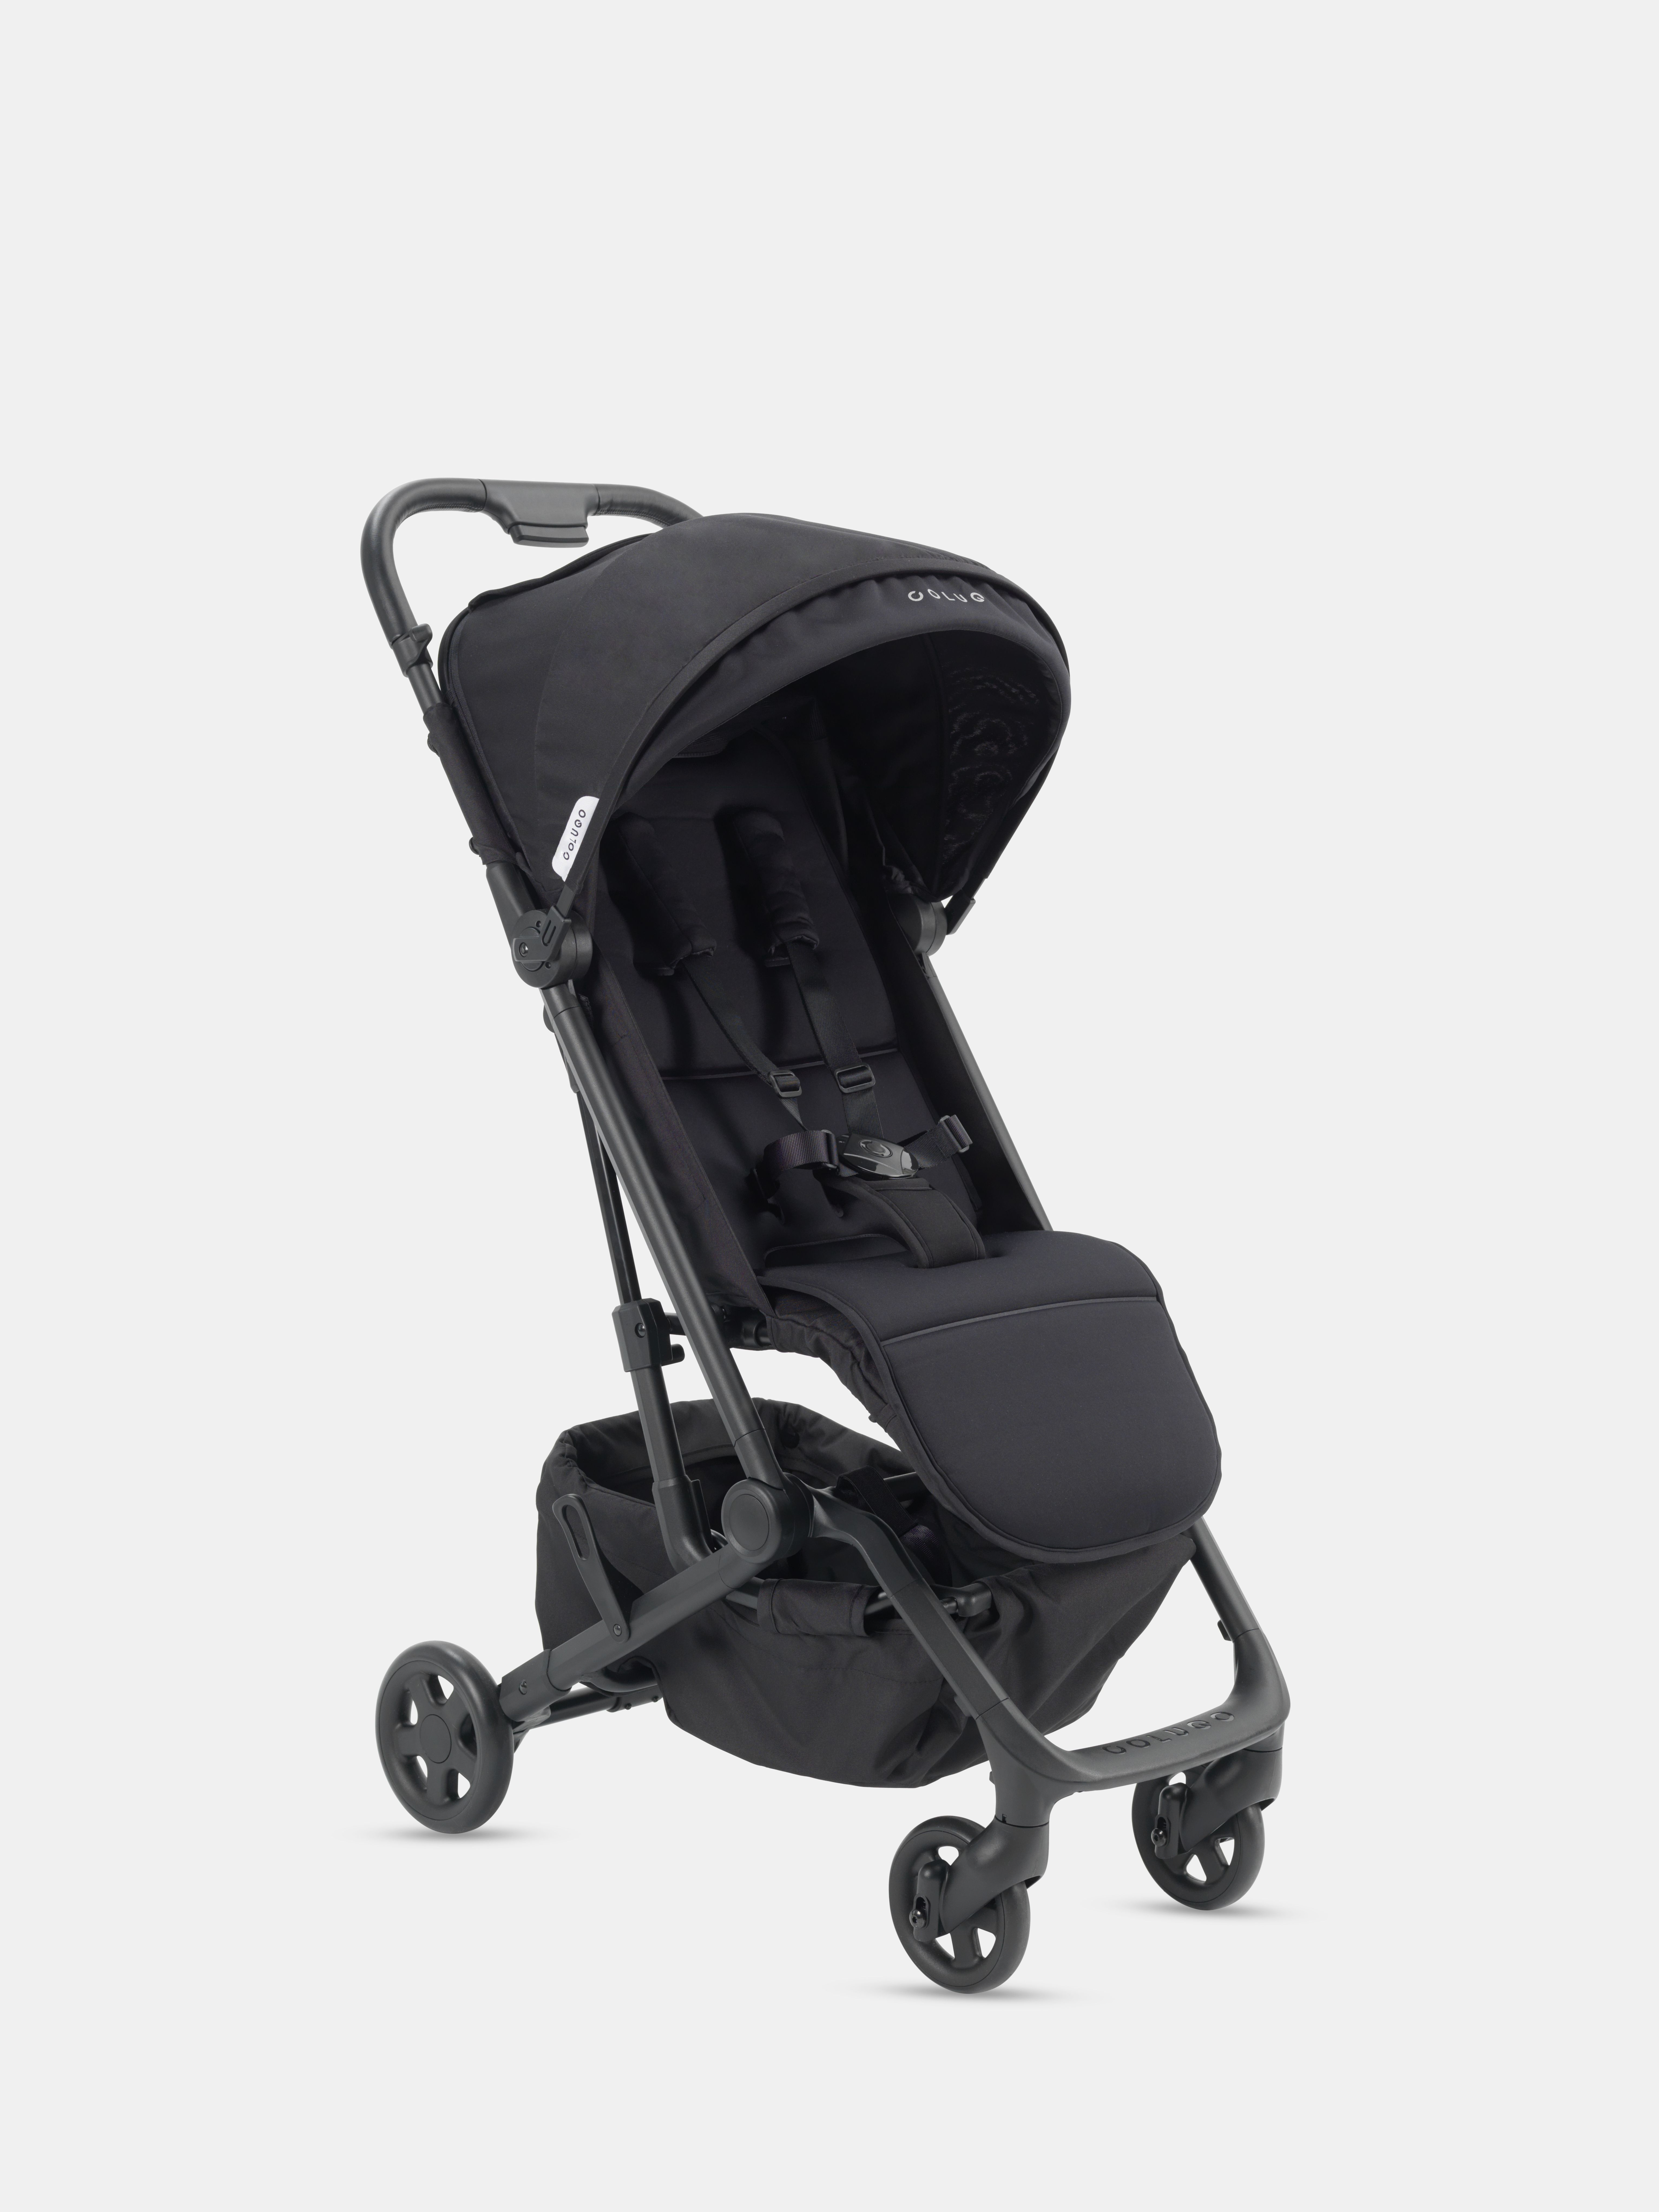 The stroller that folds with one hand, fits almost